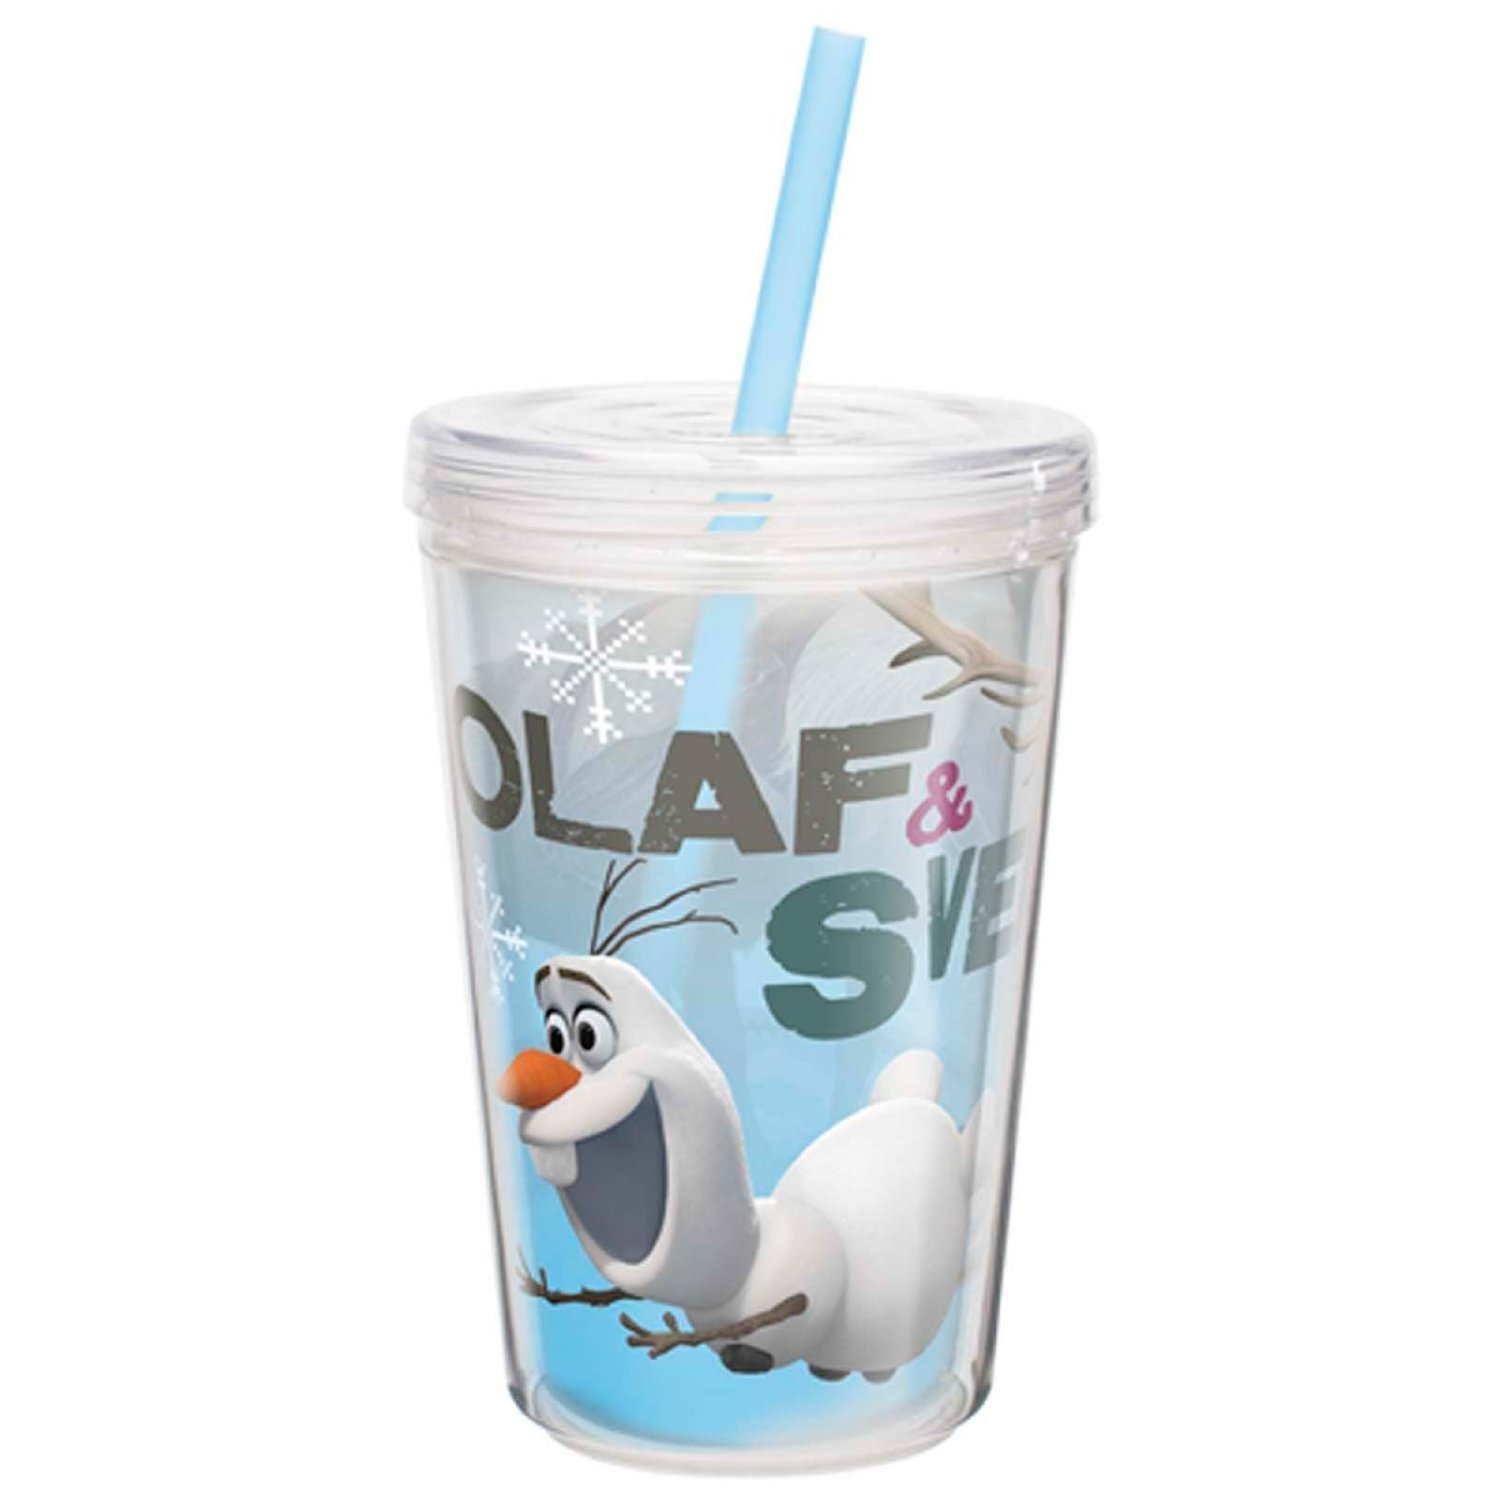 Zak! Designs Insulated Tumbler with Screw-on Lid and Straw featuring Olaf & Sven from Frozen, Break-resistant and BPA-free Plastic, 13 oz.